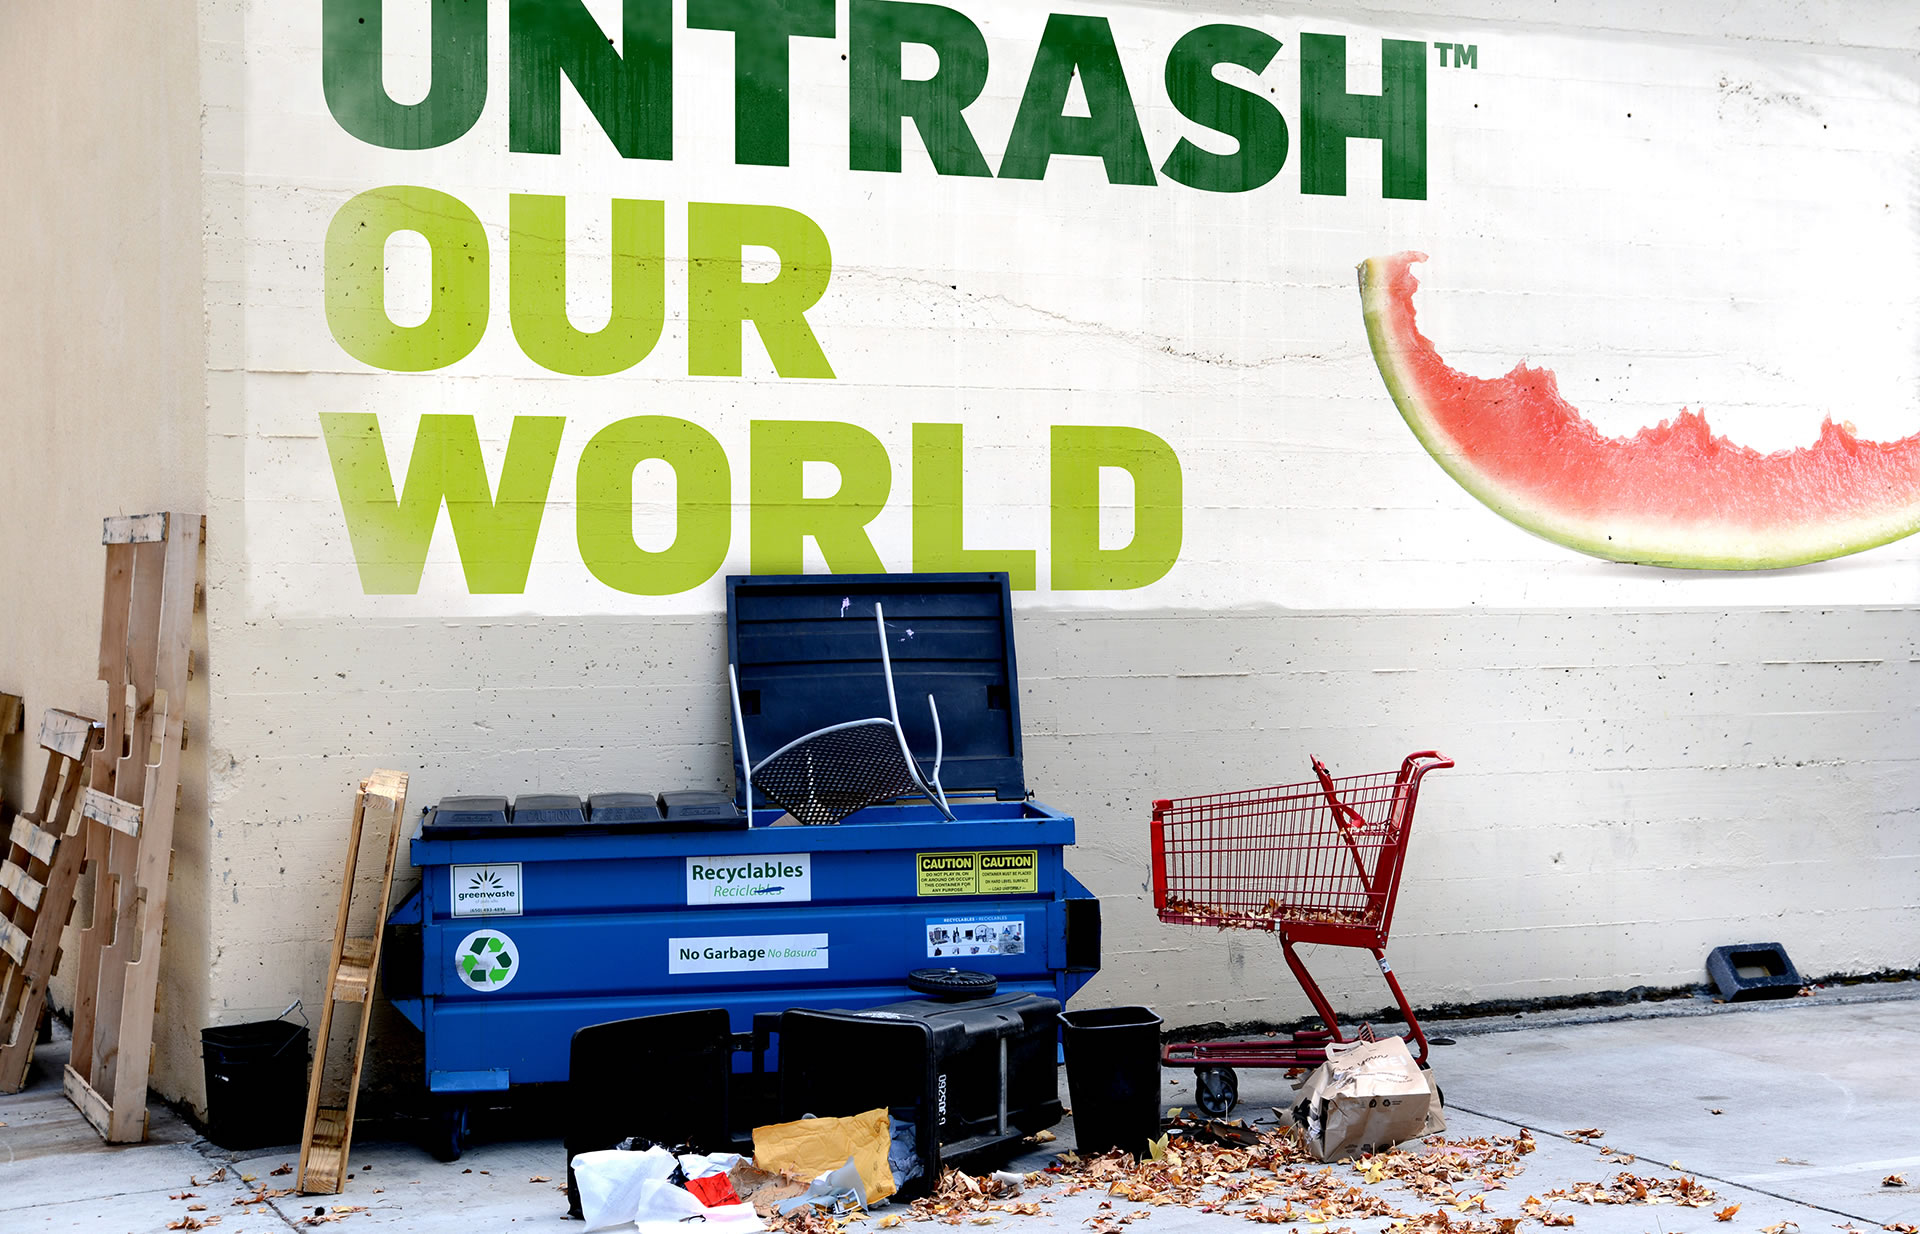 Untrash Our World message on the wall